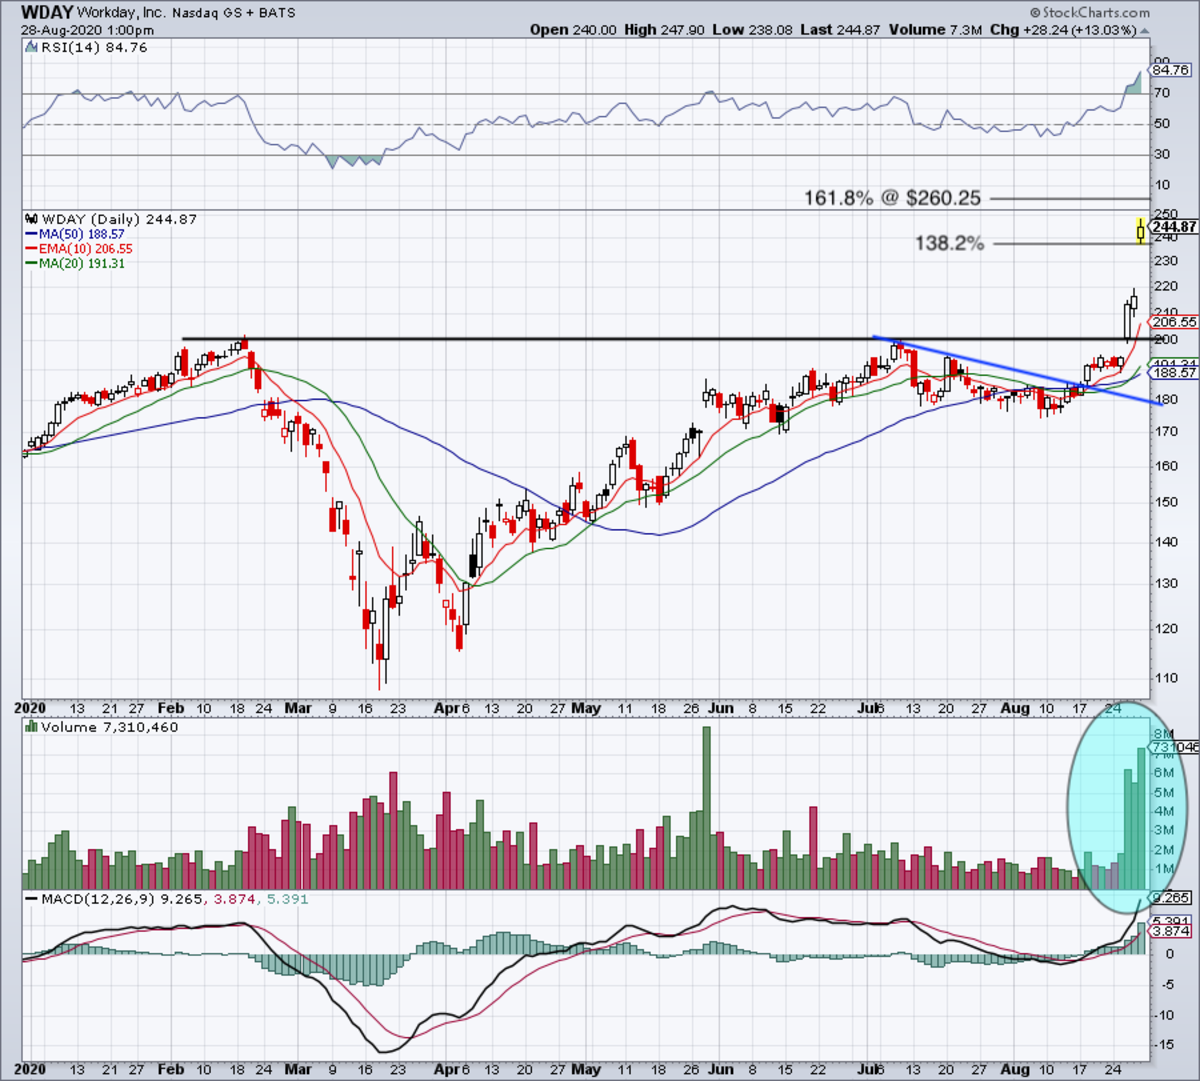 Daily chart of Workday stock.